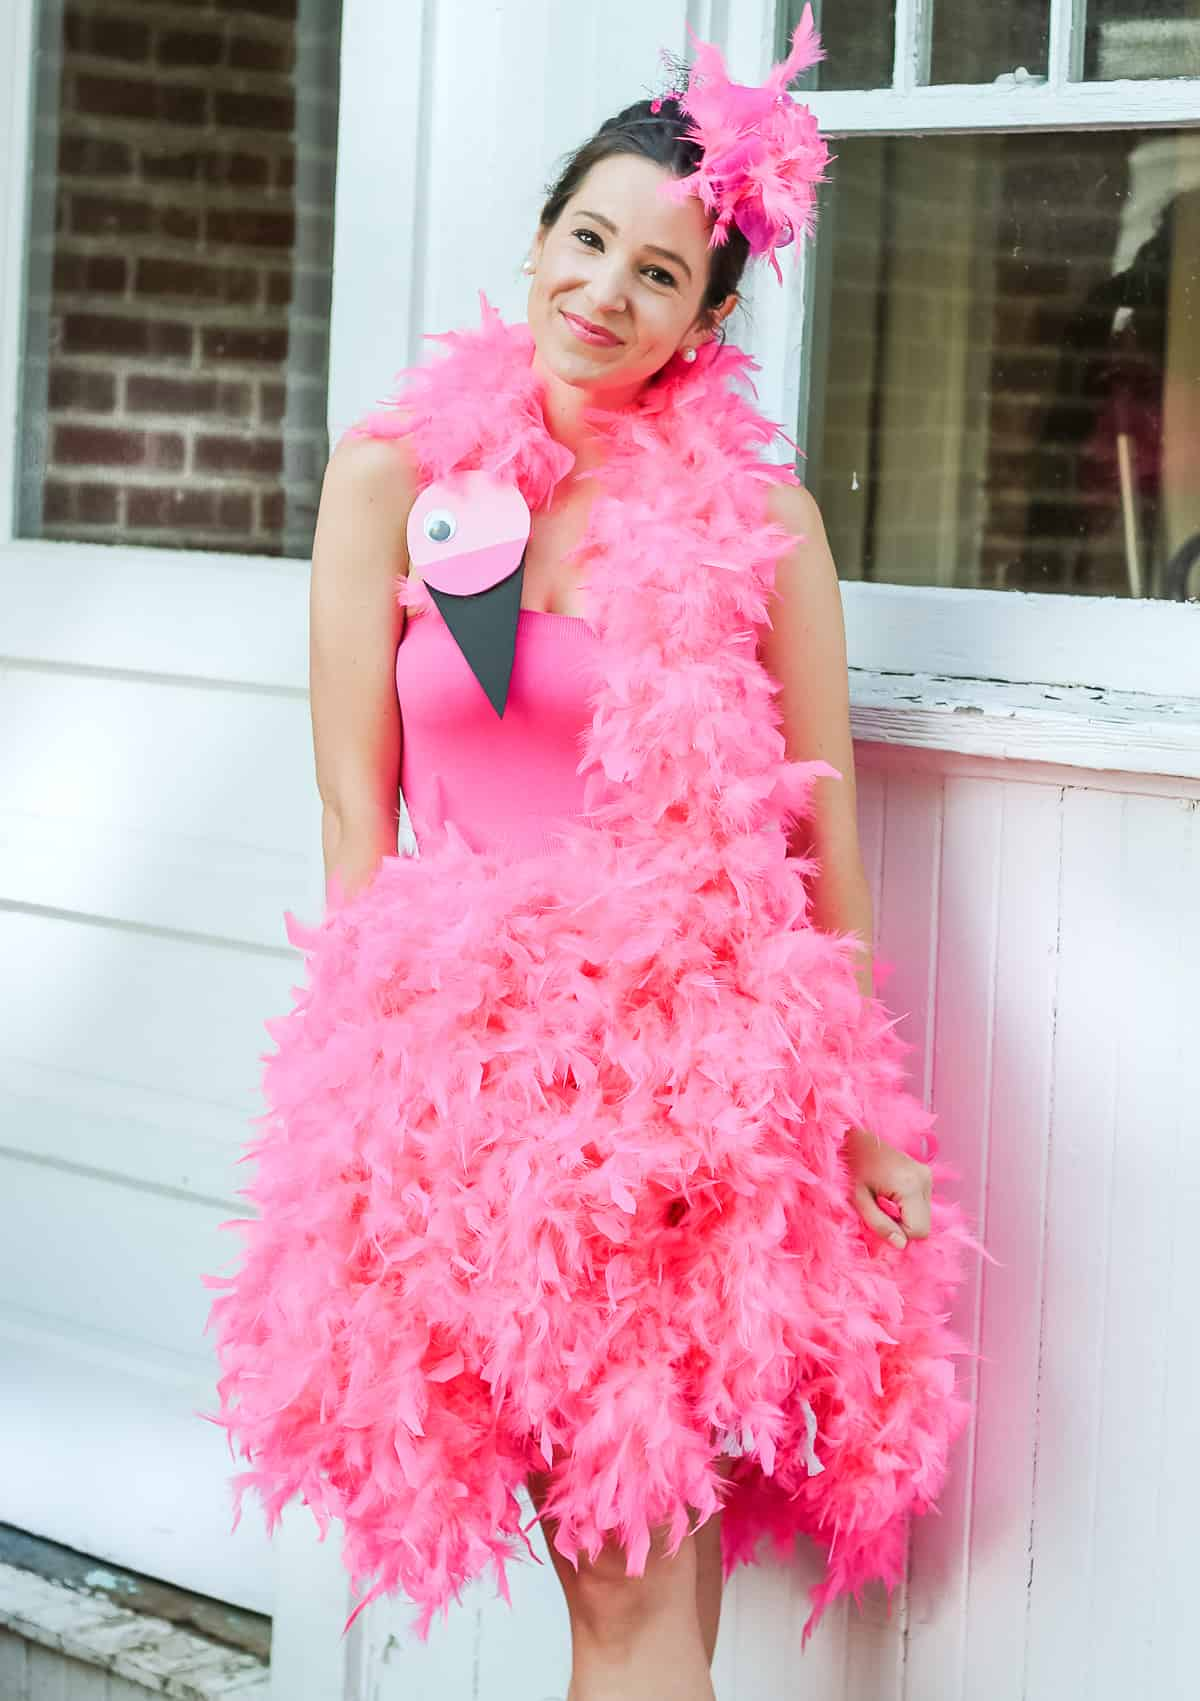 Family Halloween Costume Ideas - Be a Flamingo Family